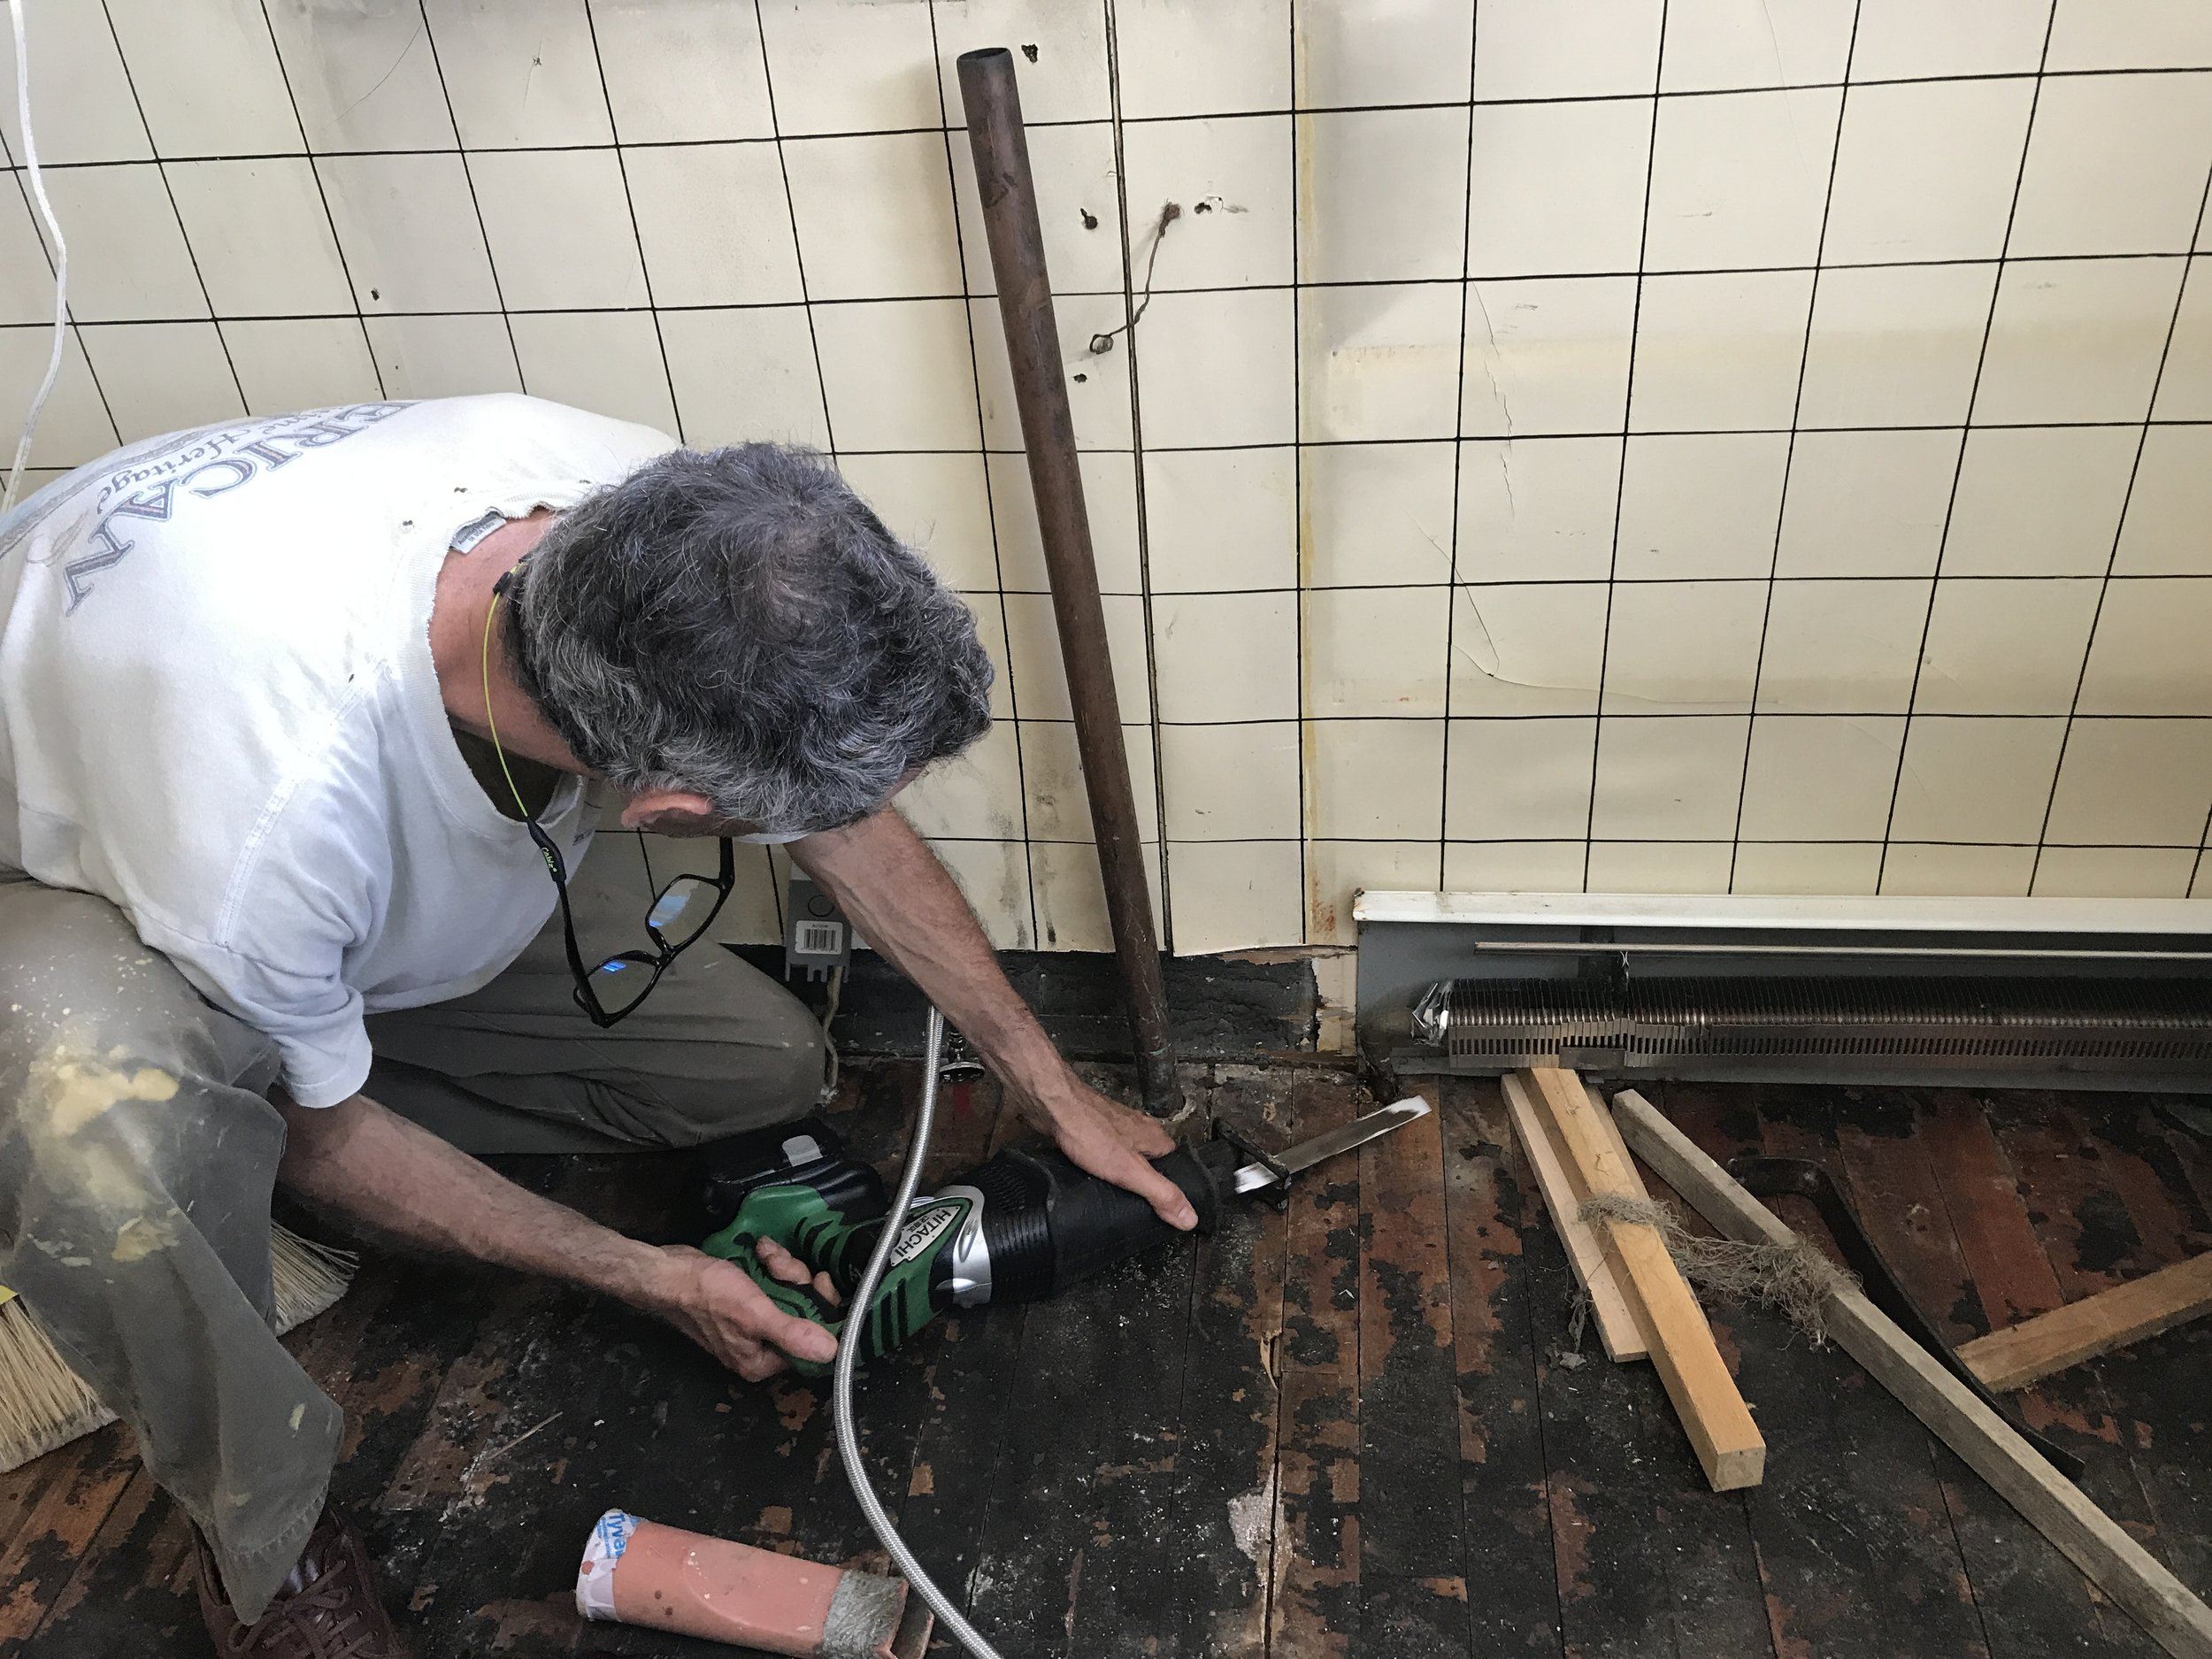 Cutting old heating plumbing? Check.